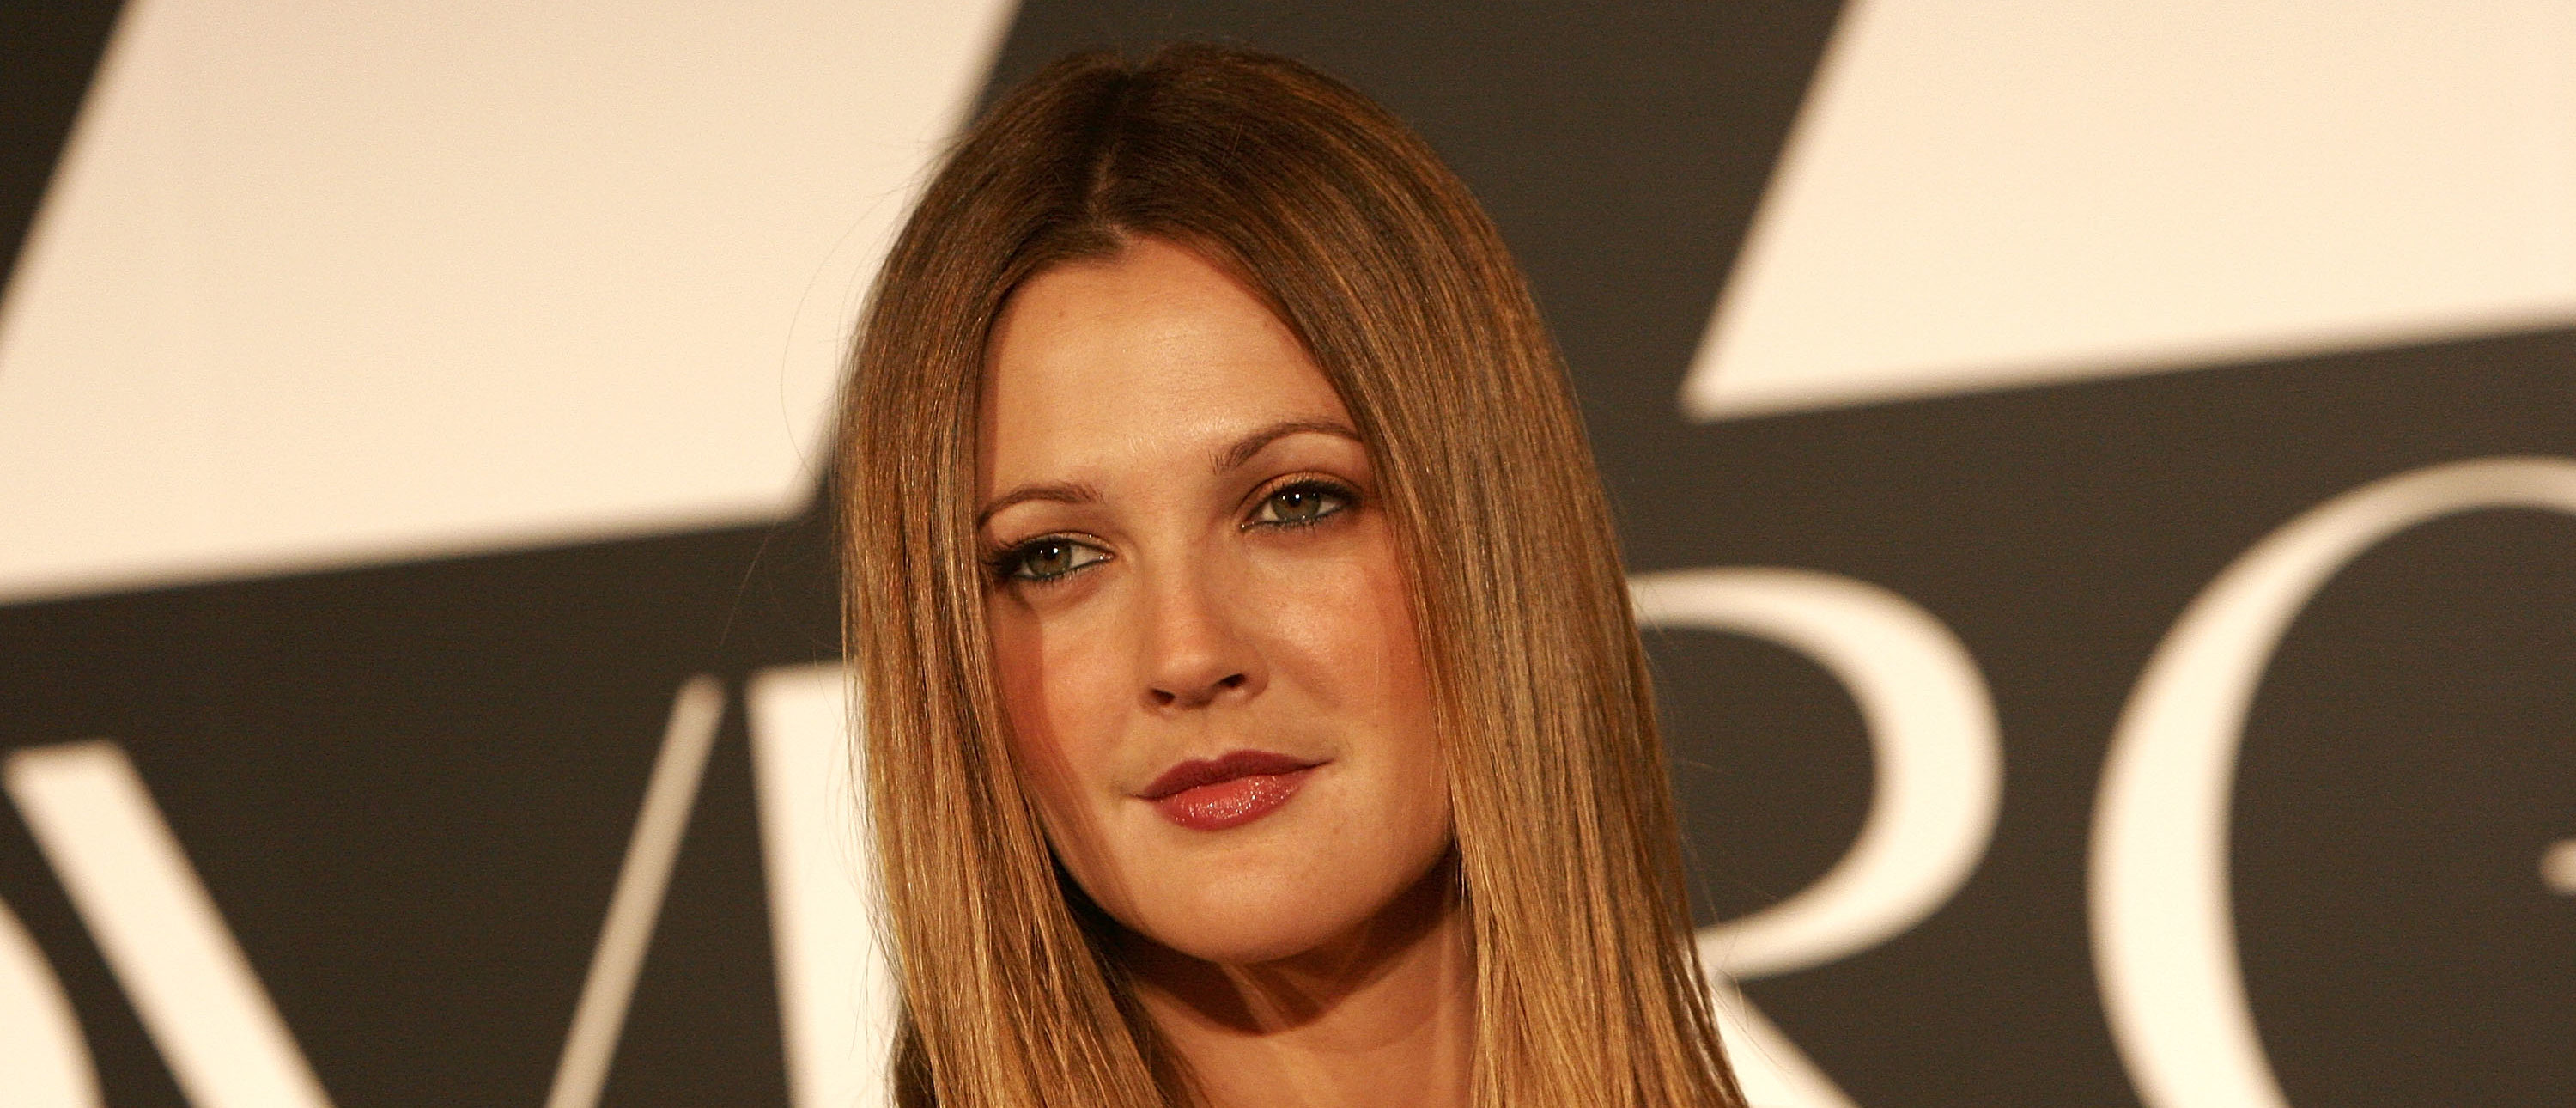 Drew Barrymore at her CoverGirl Cosmetics presentation in Los Angeles, California. (Photo credit: Charley Gallay/Getty Images)